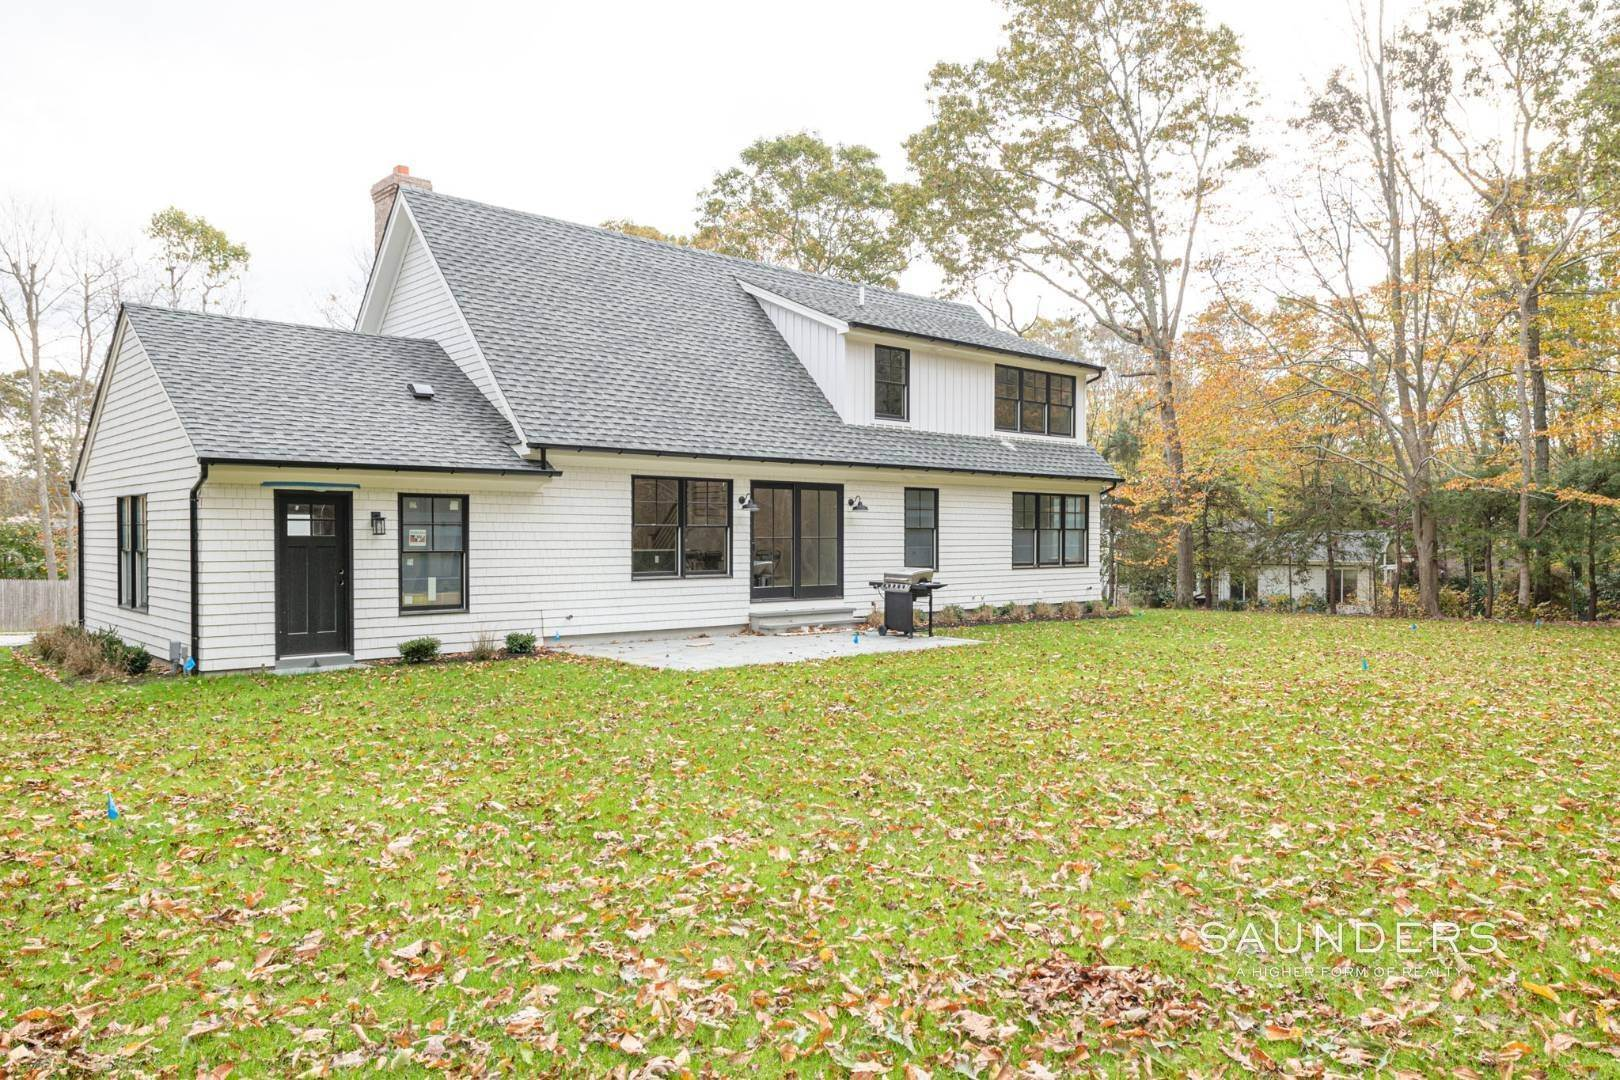 21. Single Family Homes for Sale at New Construction On Flag Lot With Room For Pool In Water Mill 479 Seven Ponds Towd Road, Water Mill, Southampton Town, NY 11976